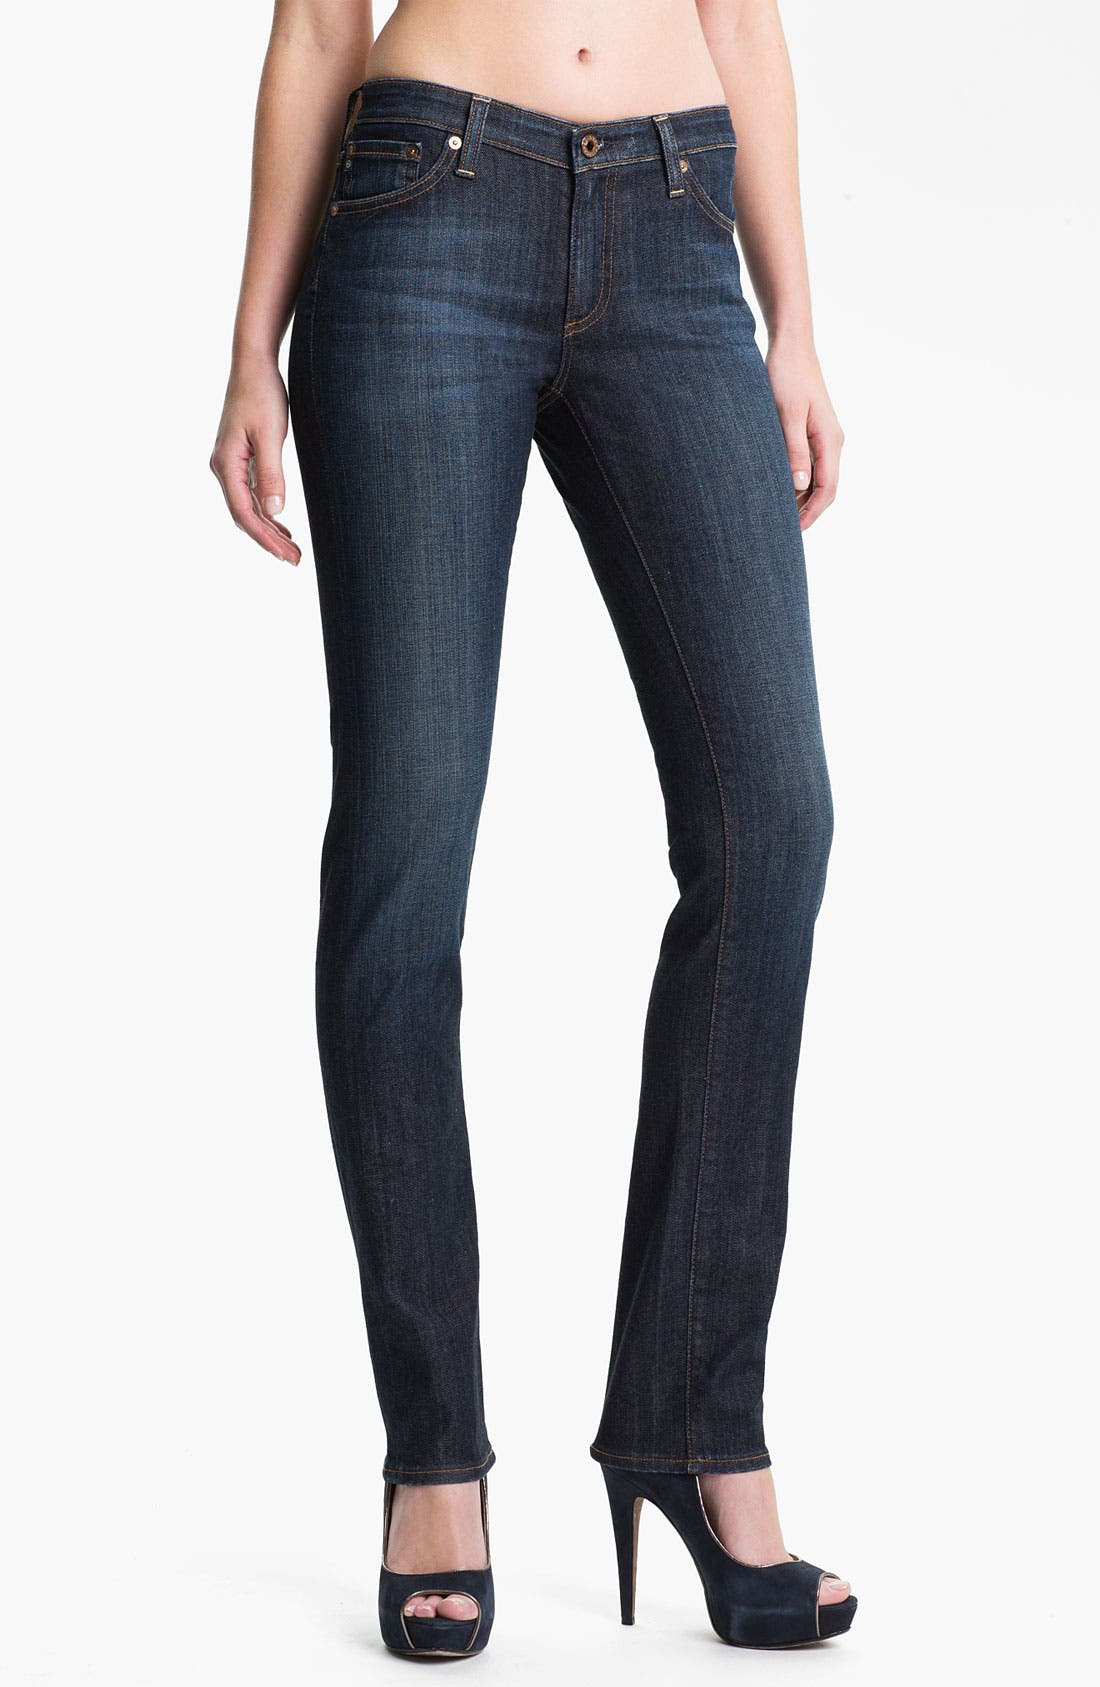 Alternate Image 1 Selected - AG Jeans 'The Premiere' Skinny Stretch Jeans (Swoon)